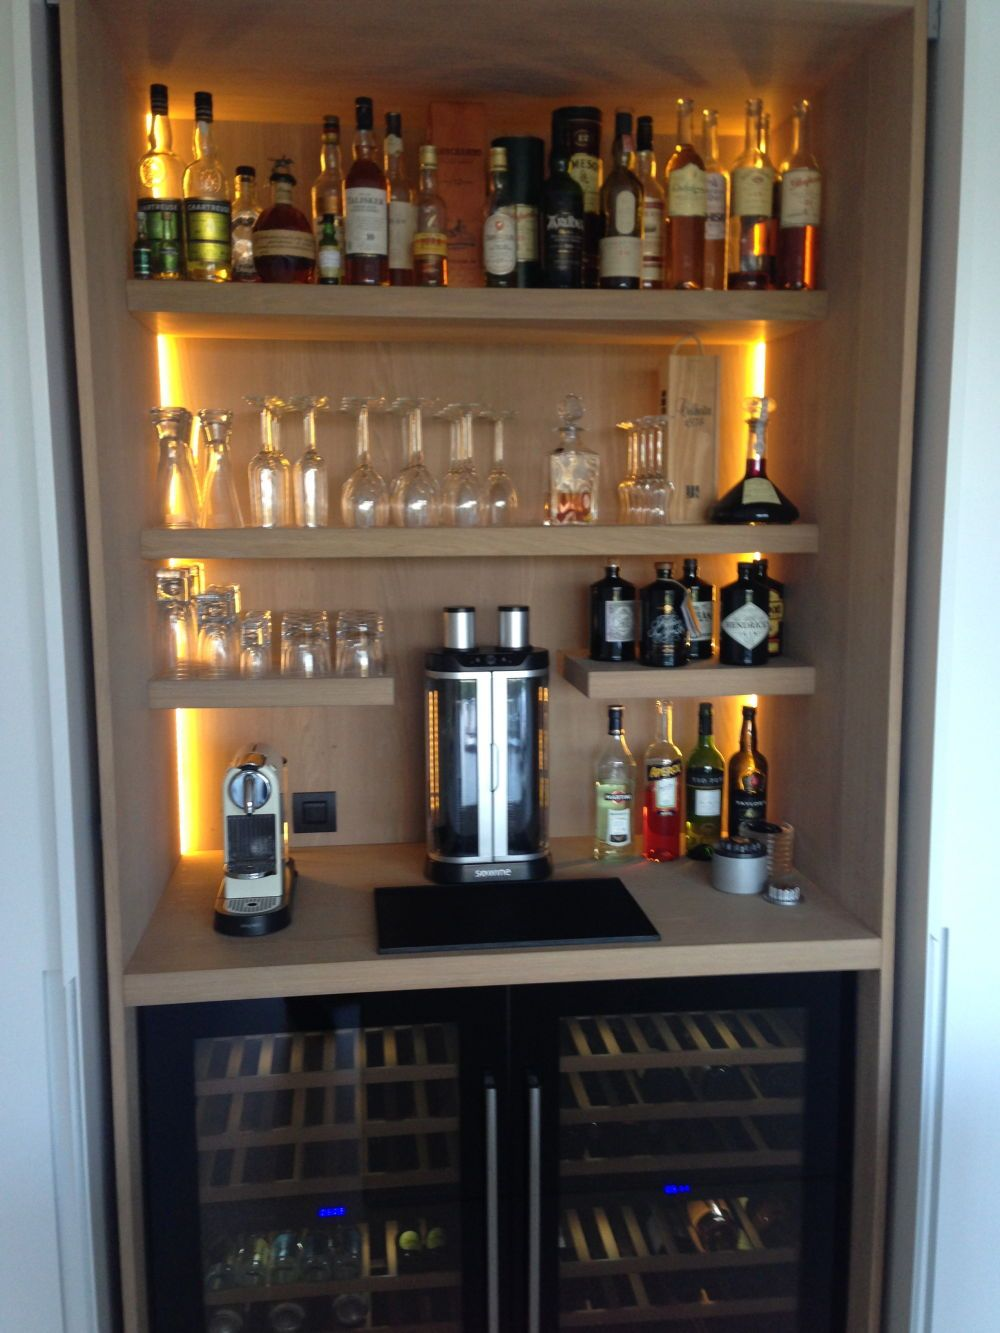 Pin by Adrien Denis on Interieur ideeën  Home bar decor, Diy home